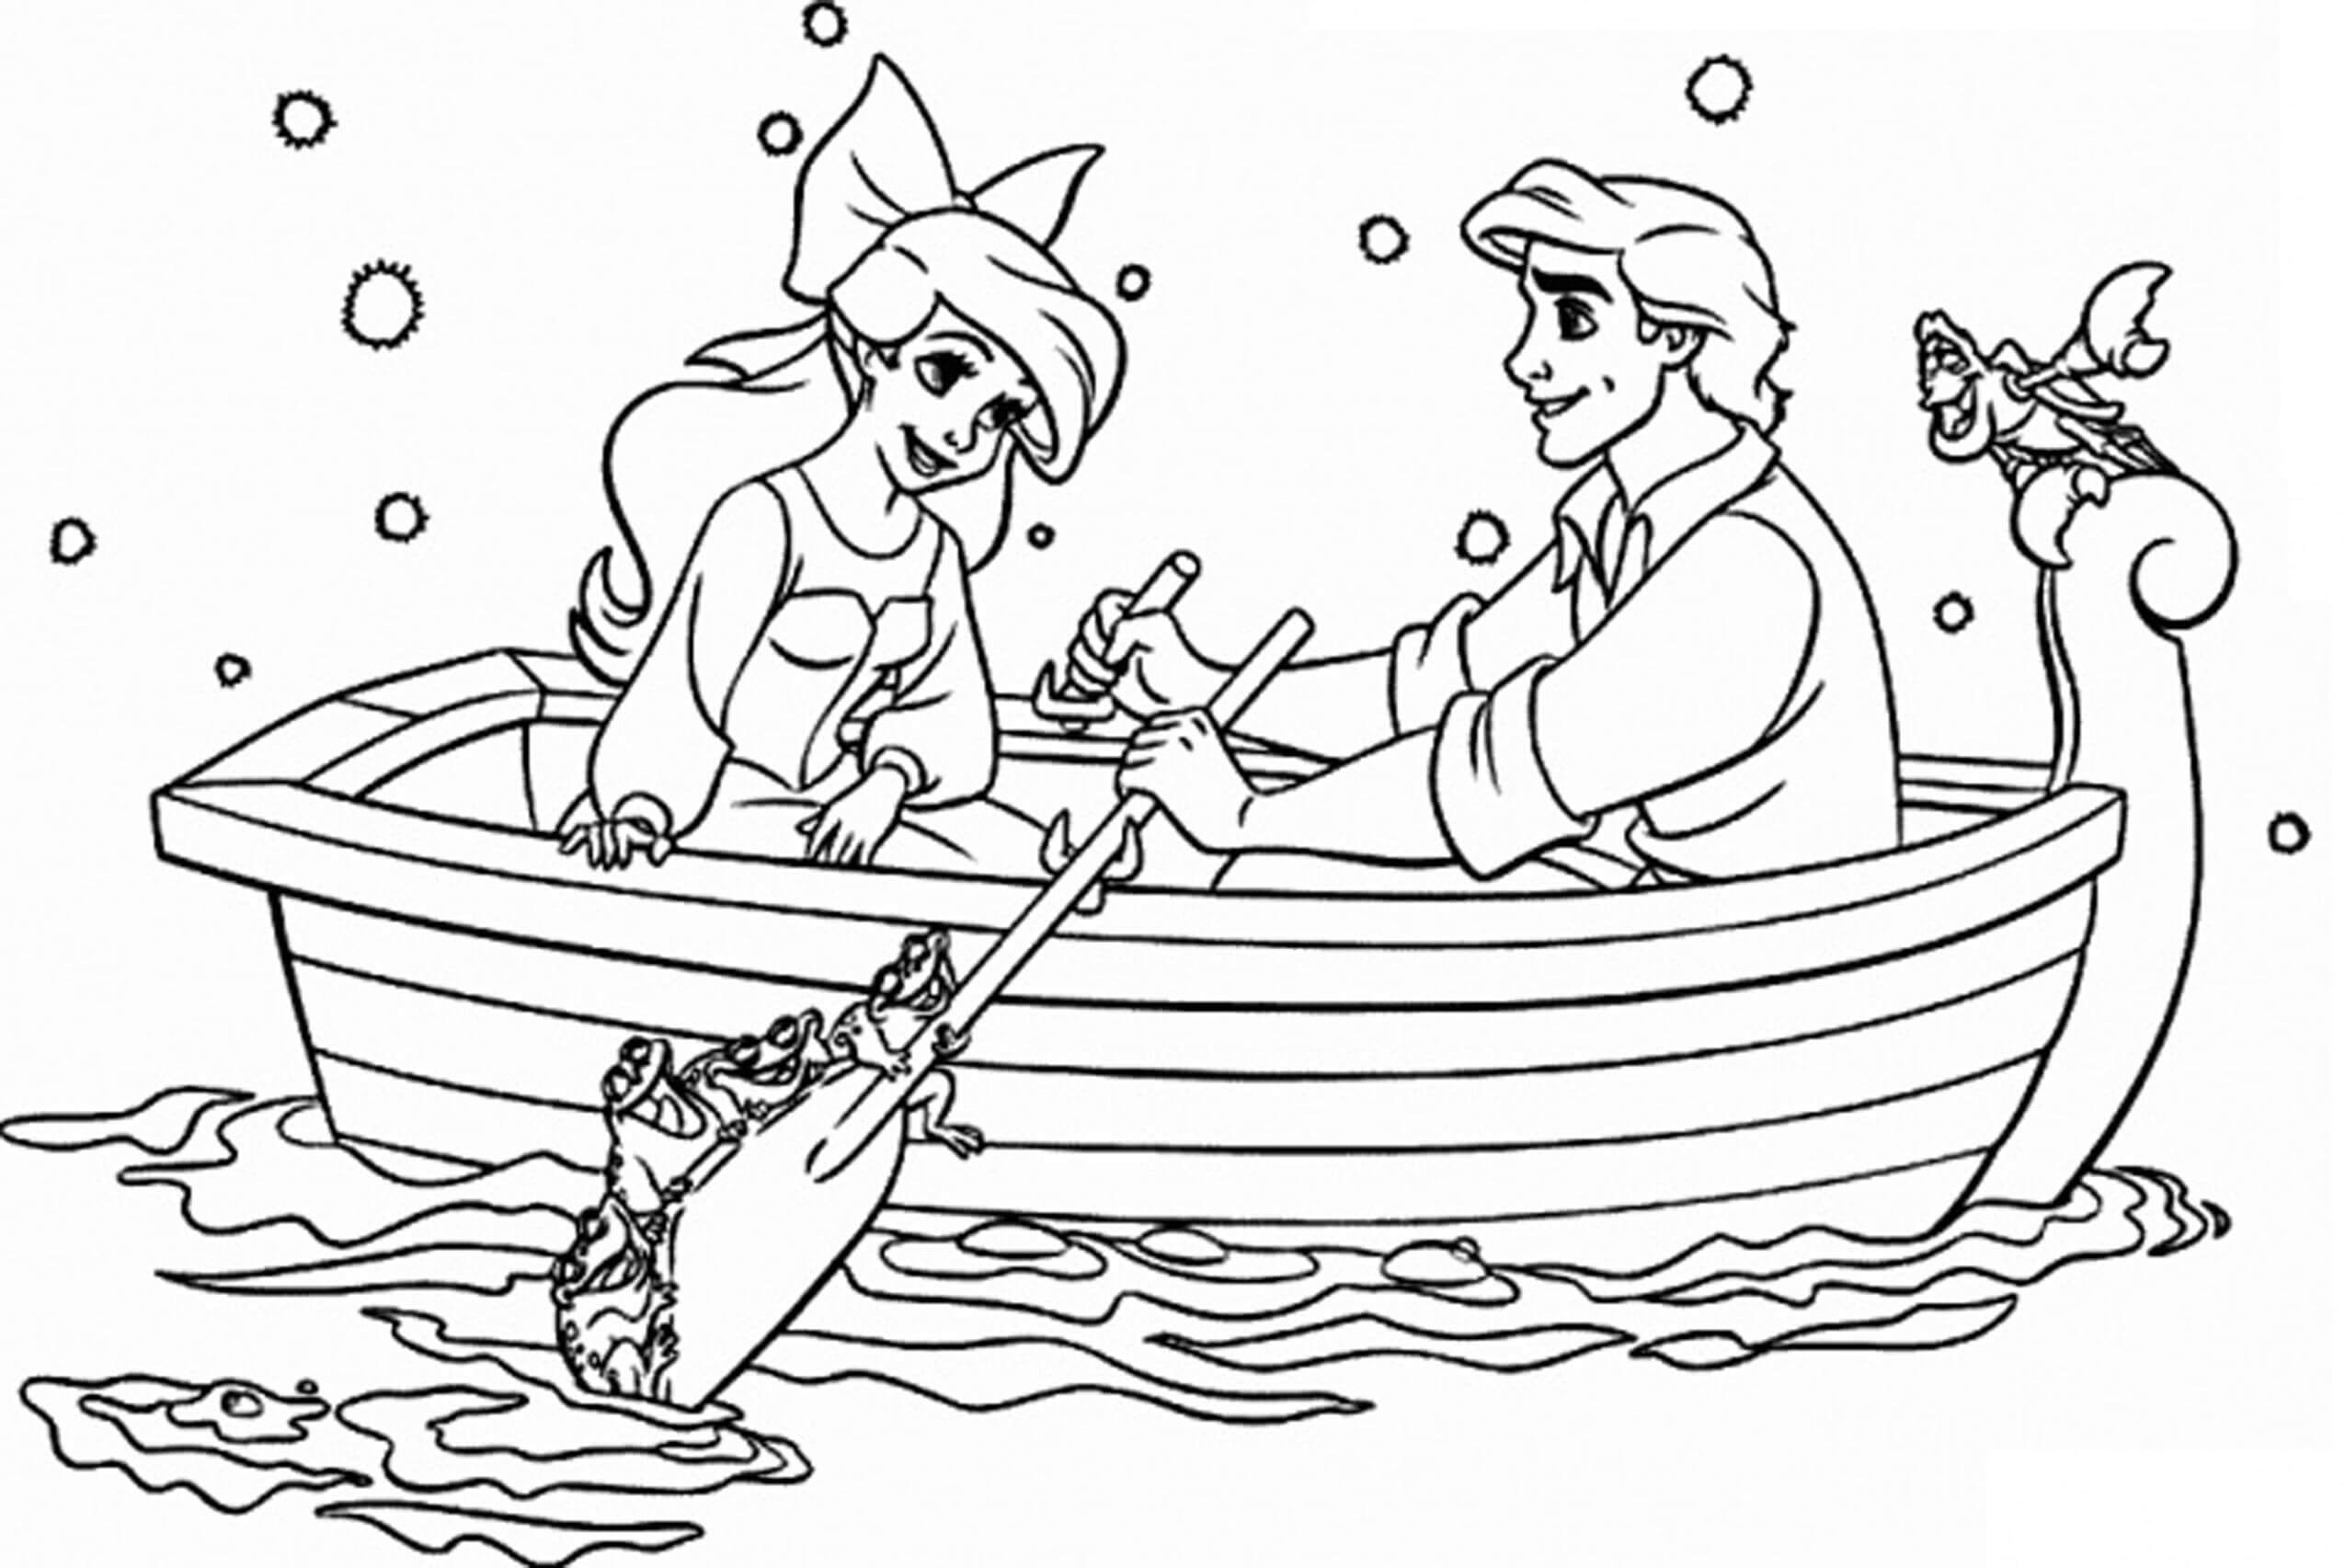 Coloring Pages Disney Color Pages To Print free disney coloring pages to print eassume com auromas